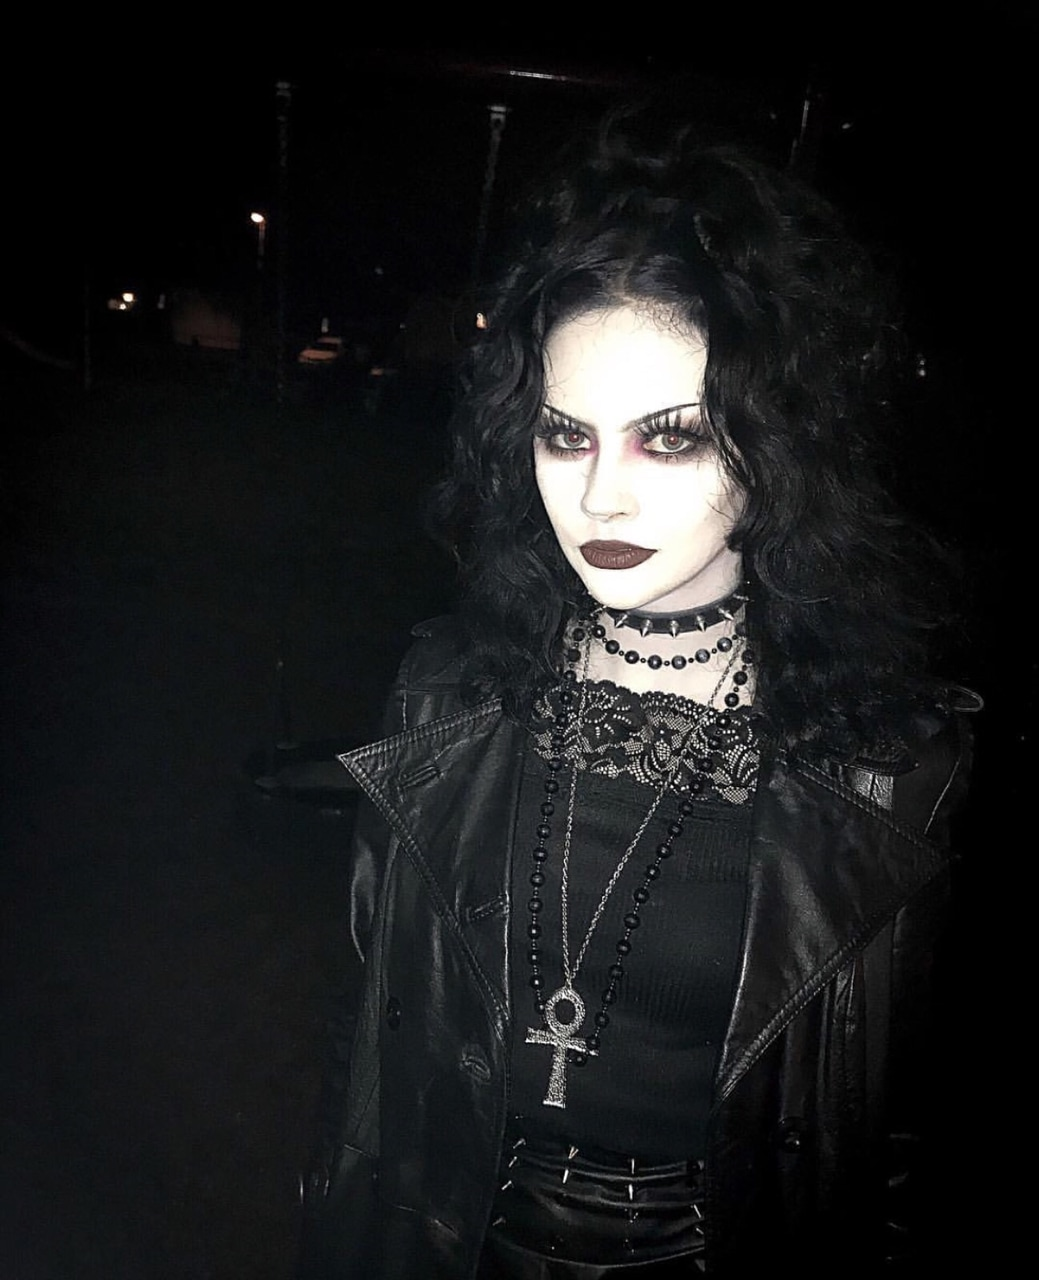 gothic, gothic girl, choker and gothic aesthetic